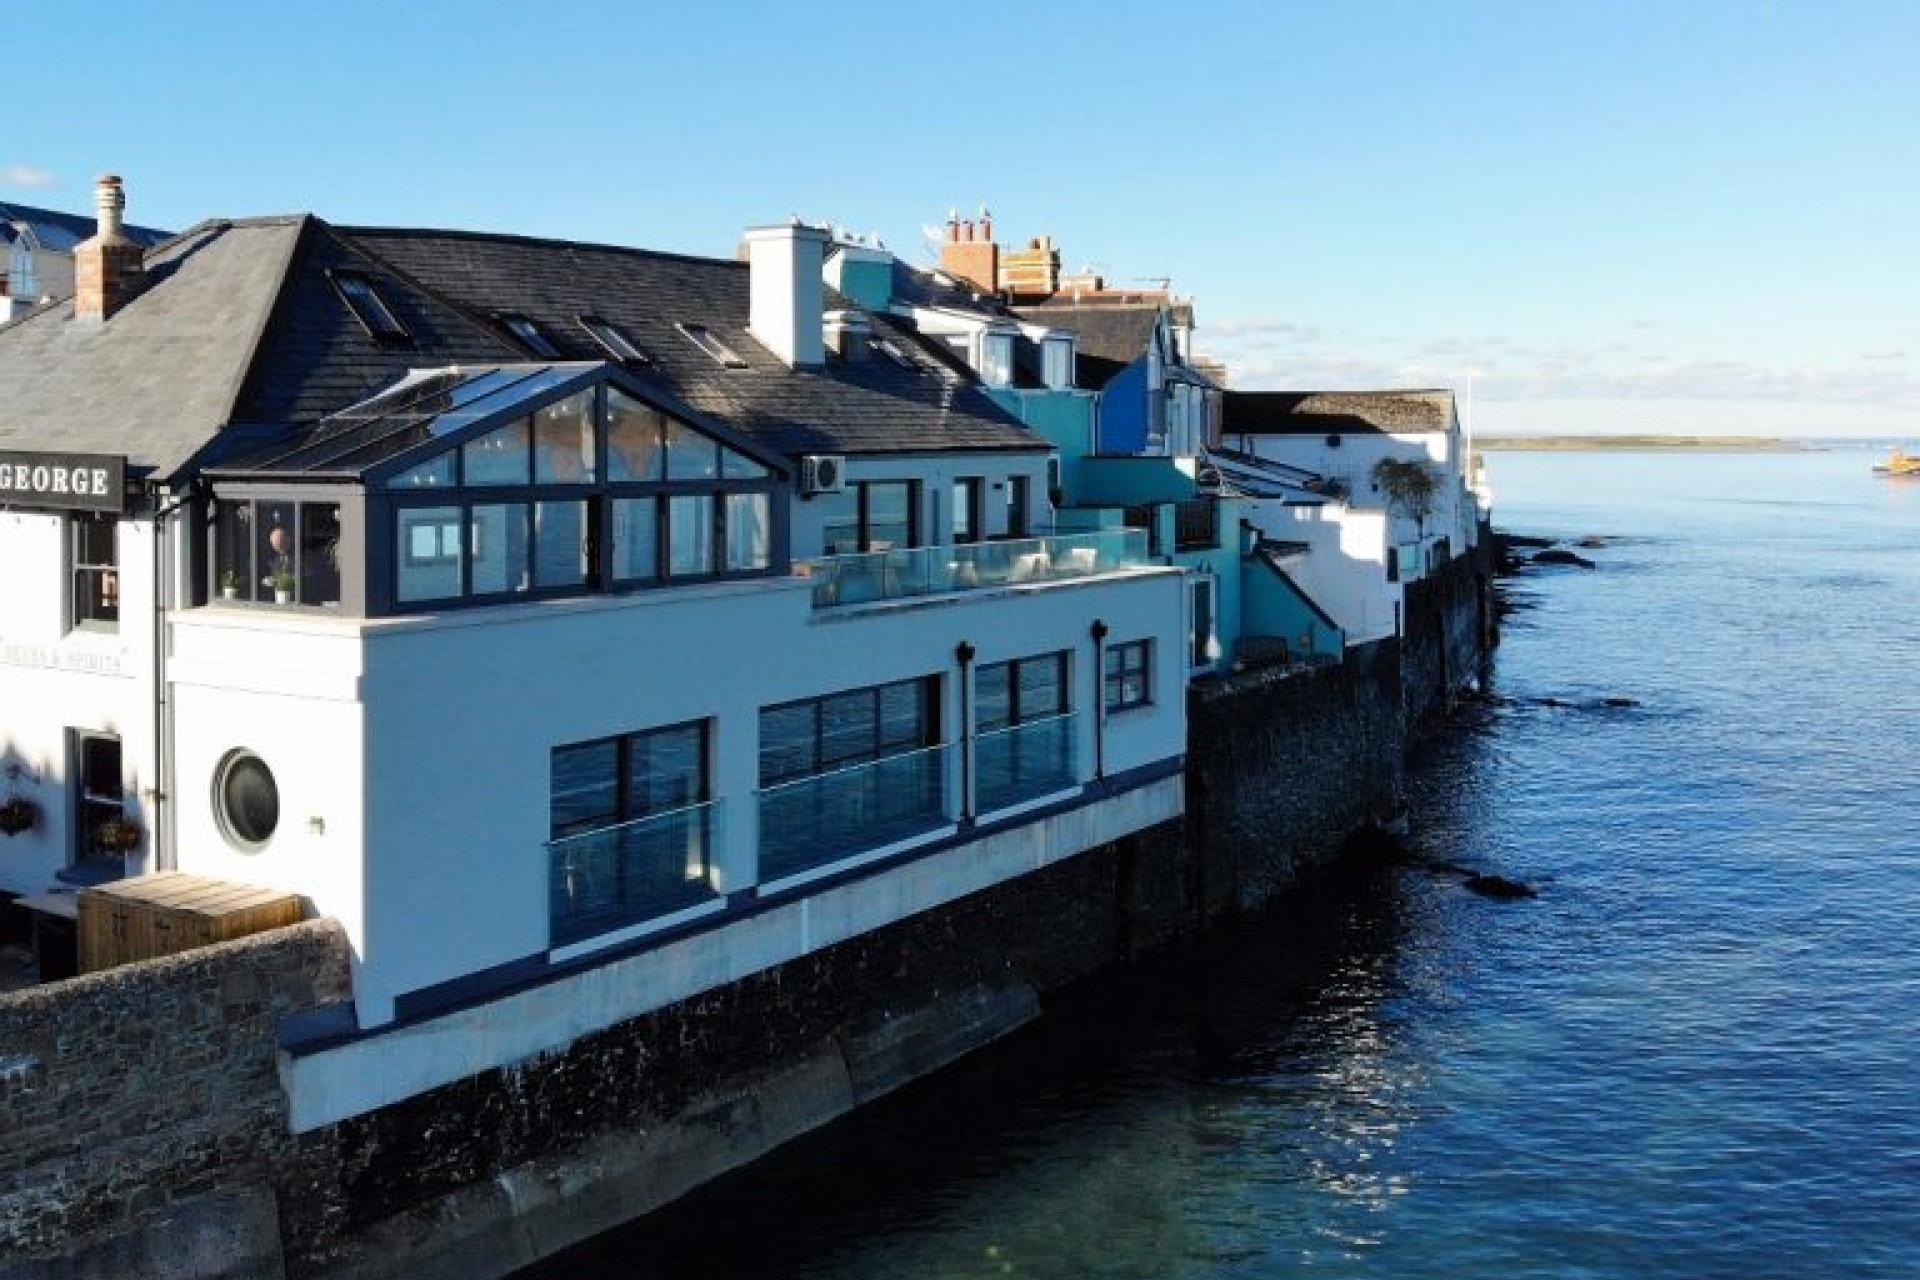 Places to Eat - The Royal George, Appledore